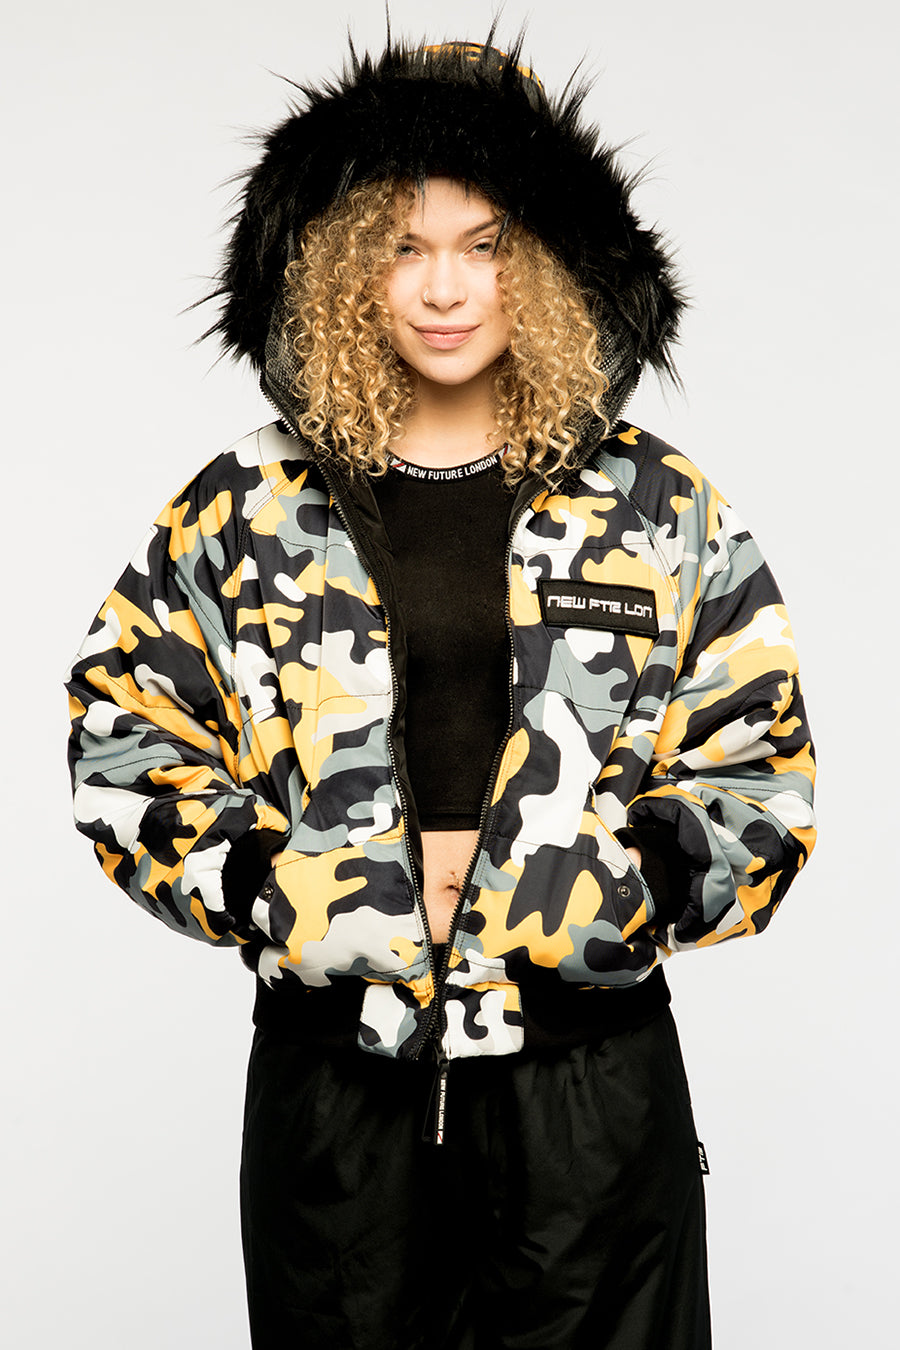 new_future_london_fur_hood_bomber_camo_yellow_2-1.jpg